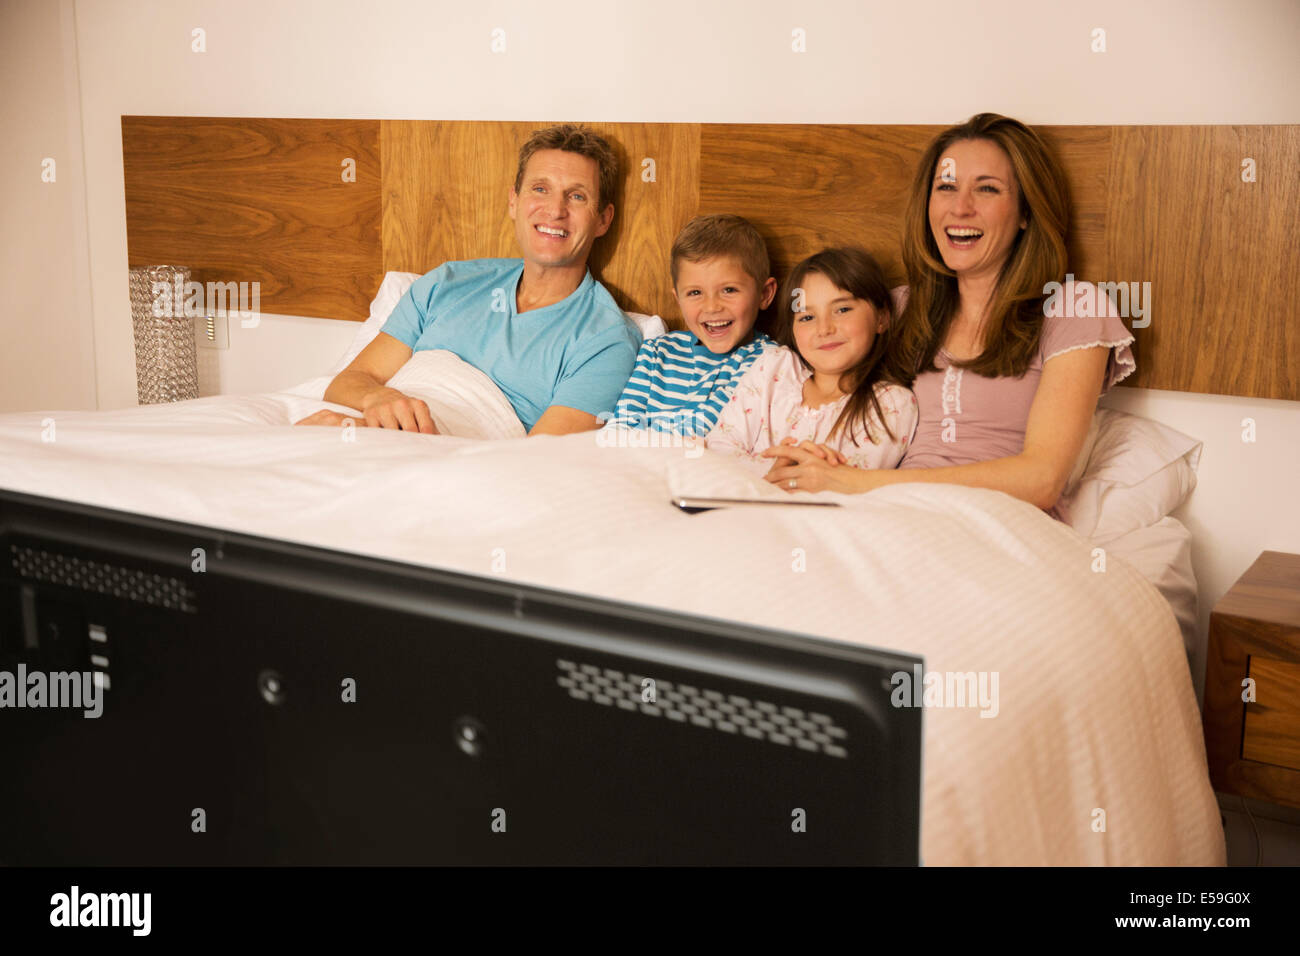 Family watching television in bed - Stock Image